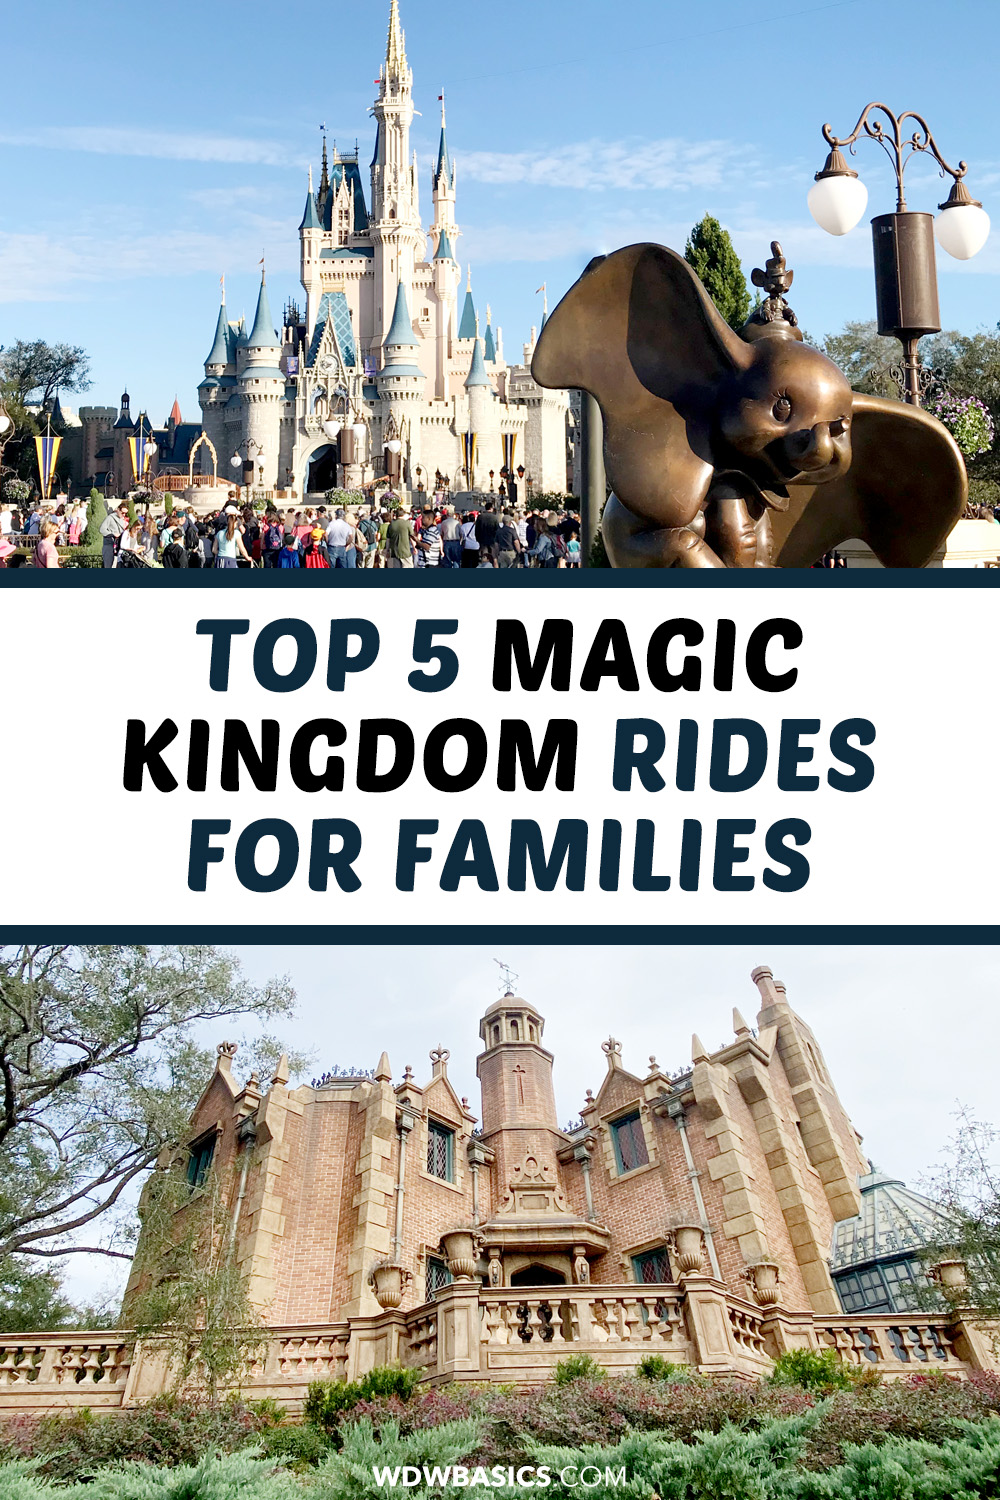 Best Magic Kingdom rides for Families